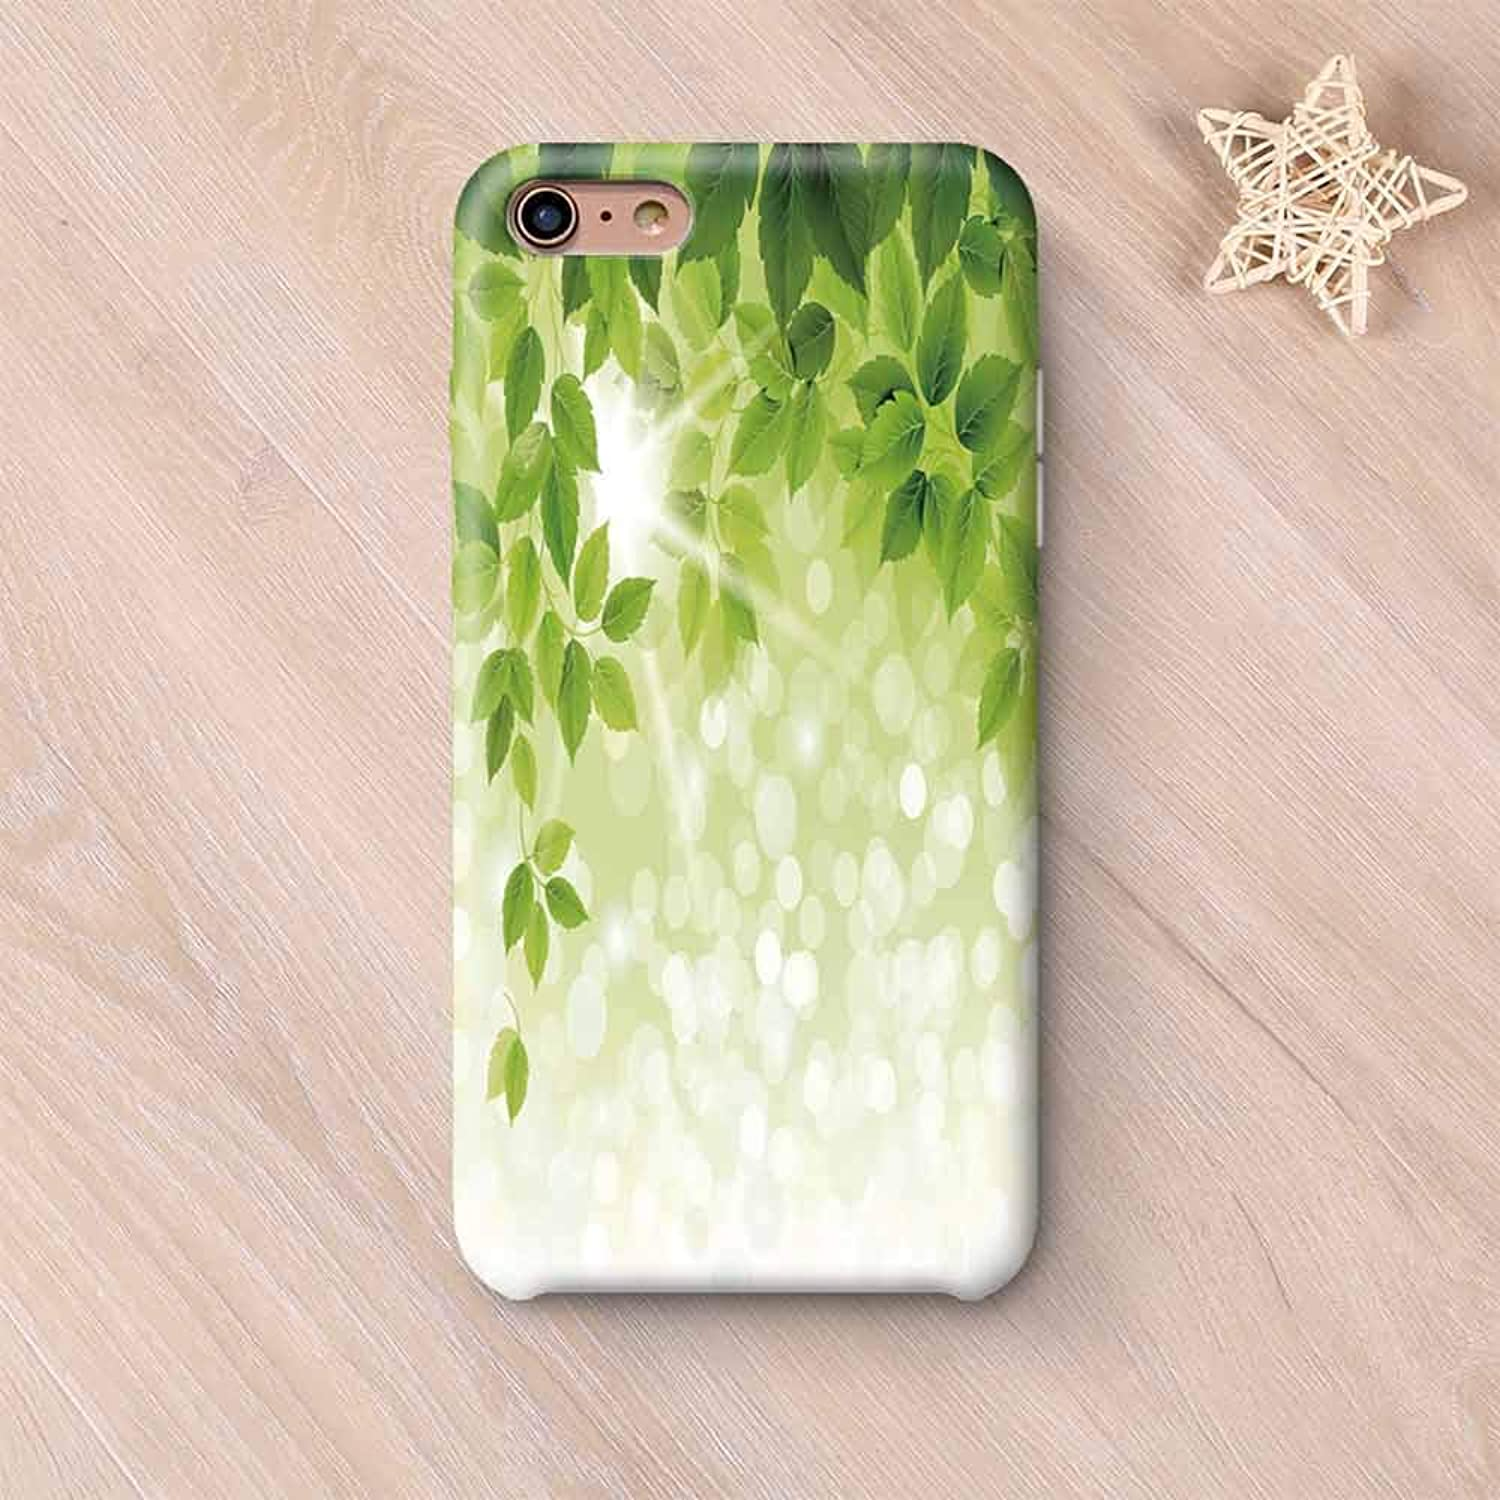 Leaf Hard Shell Compatible with iPhone Case,Summer Spring Branch Leaves Foliage on Abstract Backdrop Decorative Compatible with iPhone 7/8,iPhone 6 Plus / 6s Plus